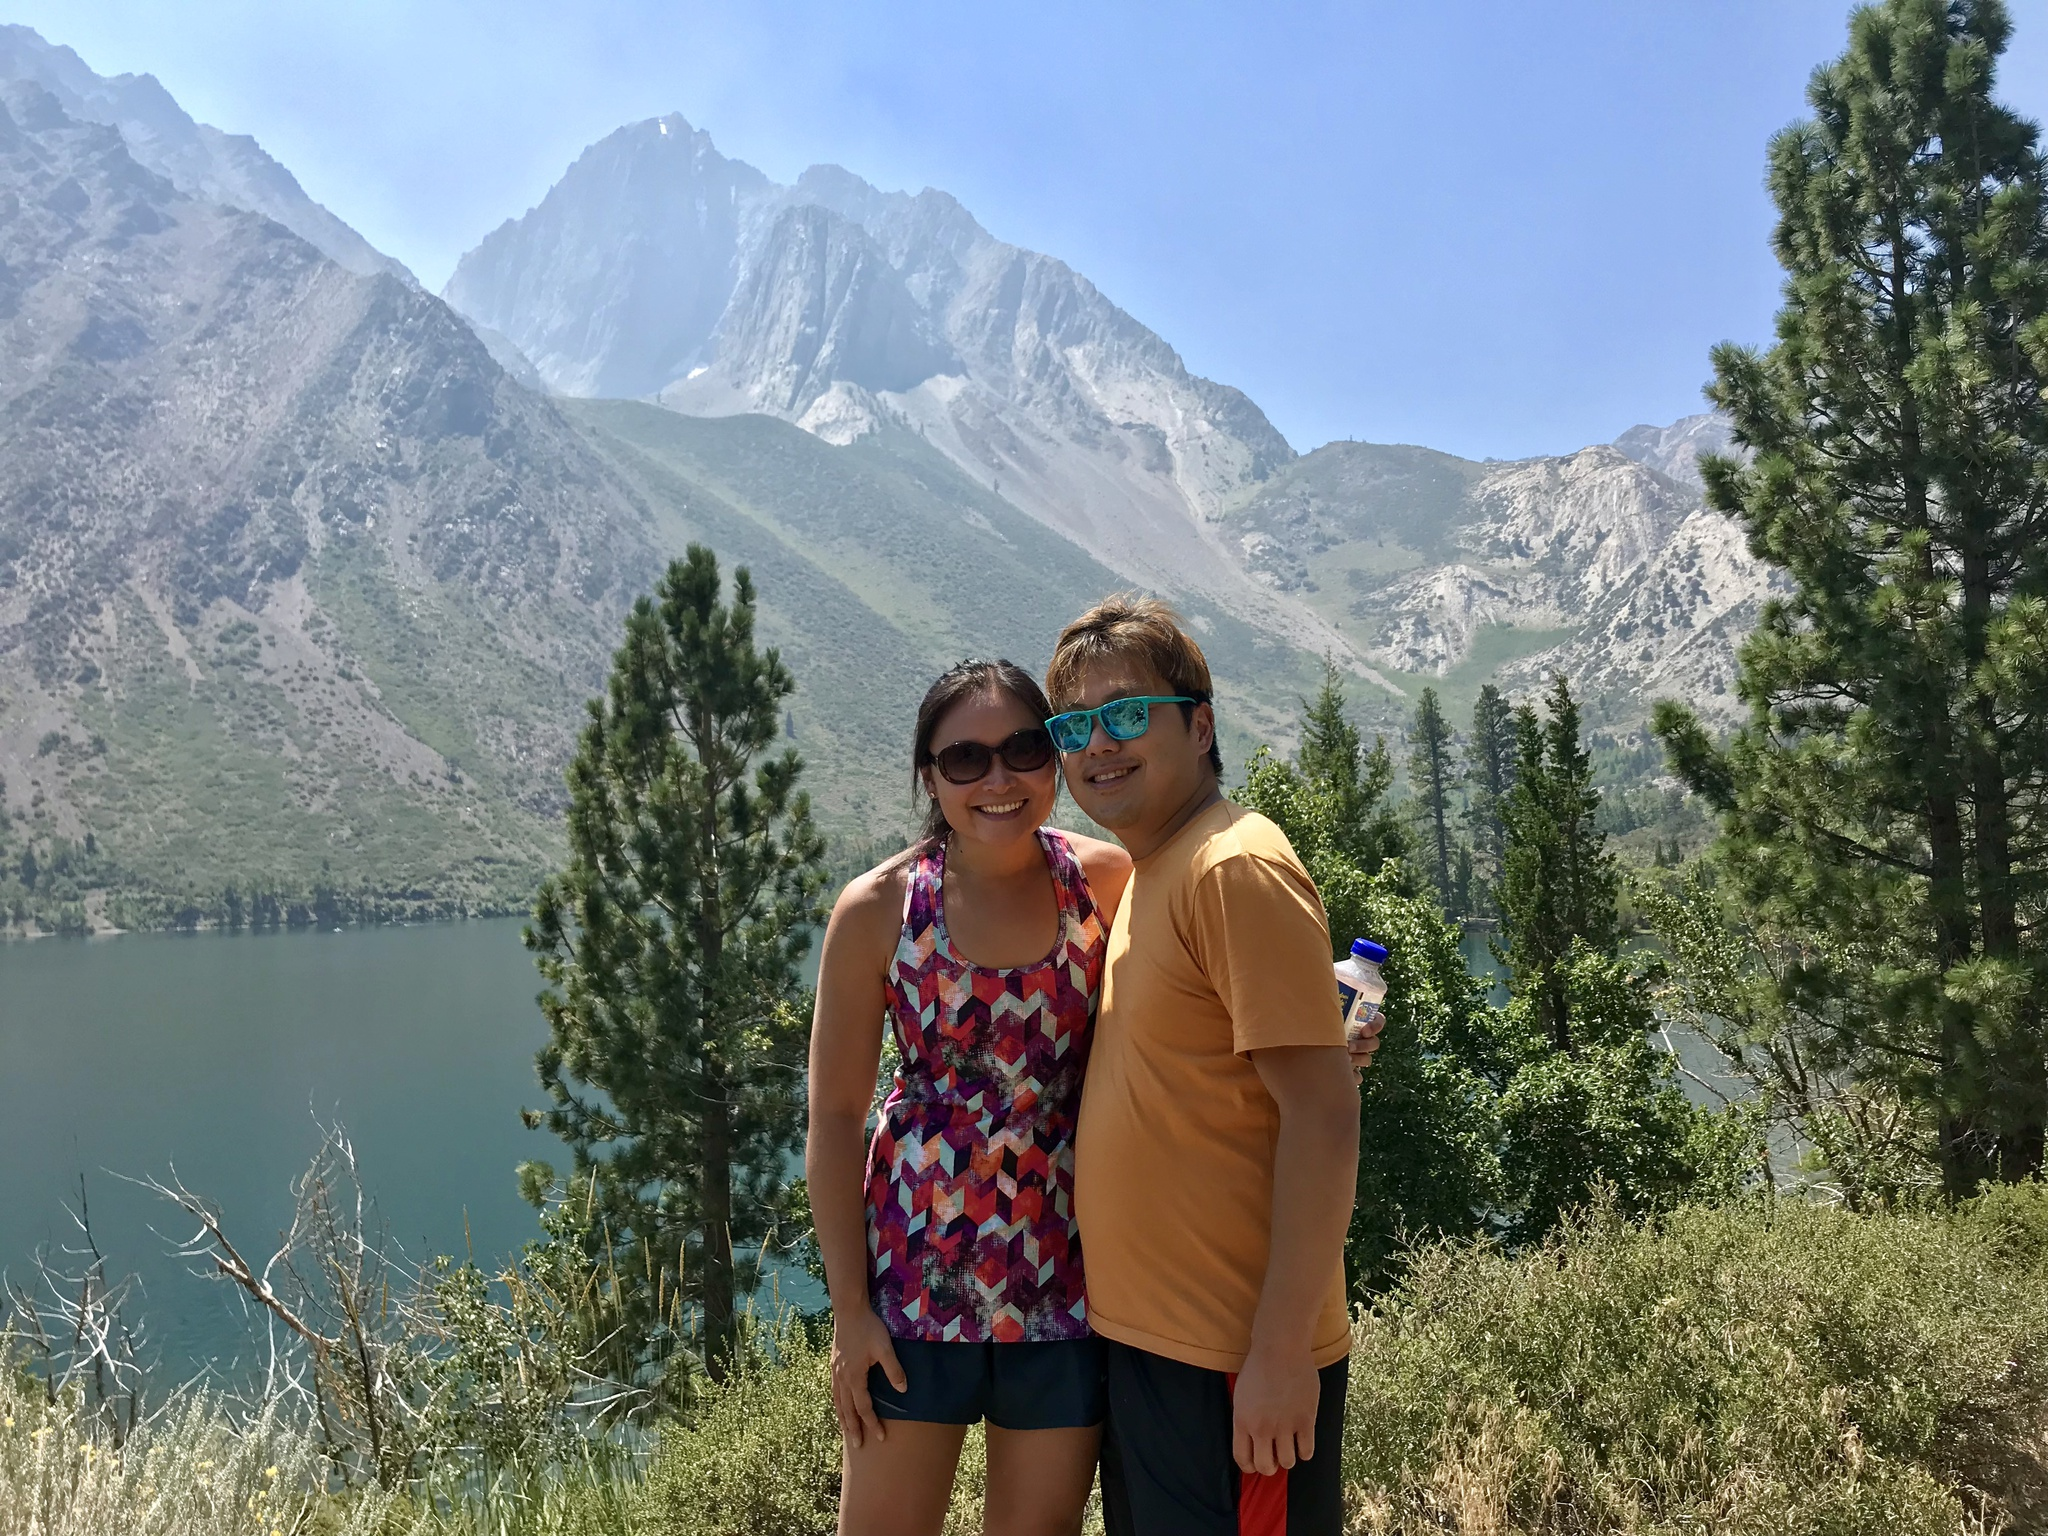 Hiking in Mammoth Lakes, CA